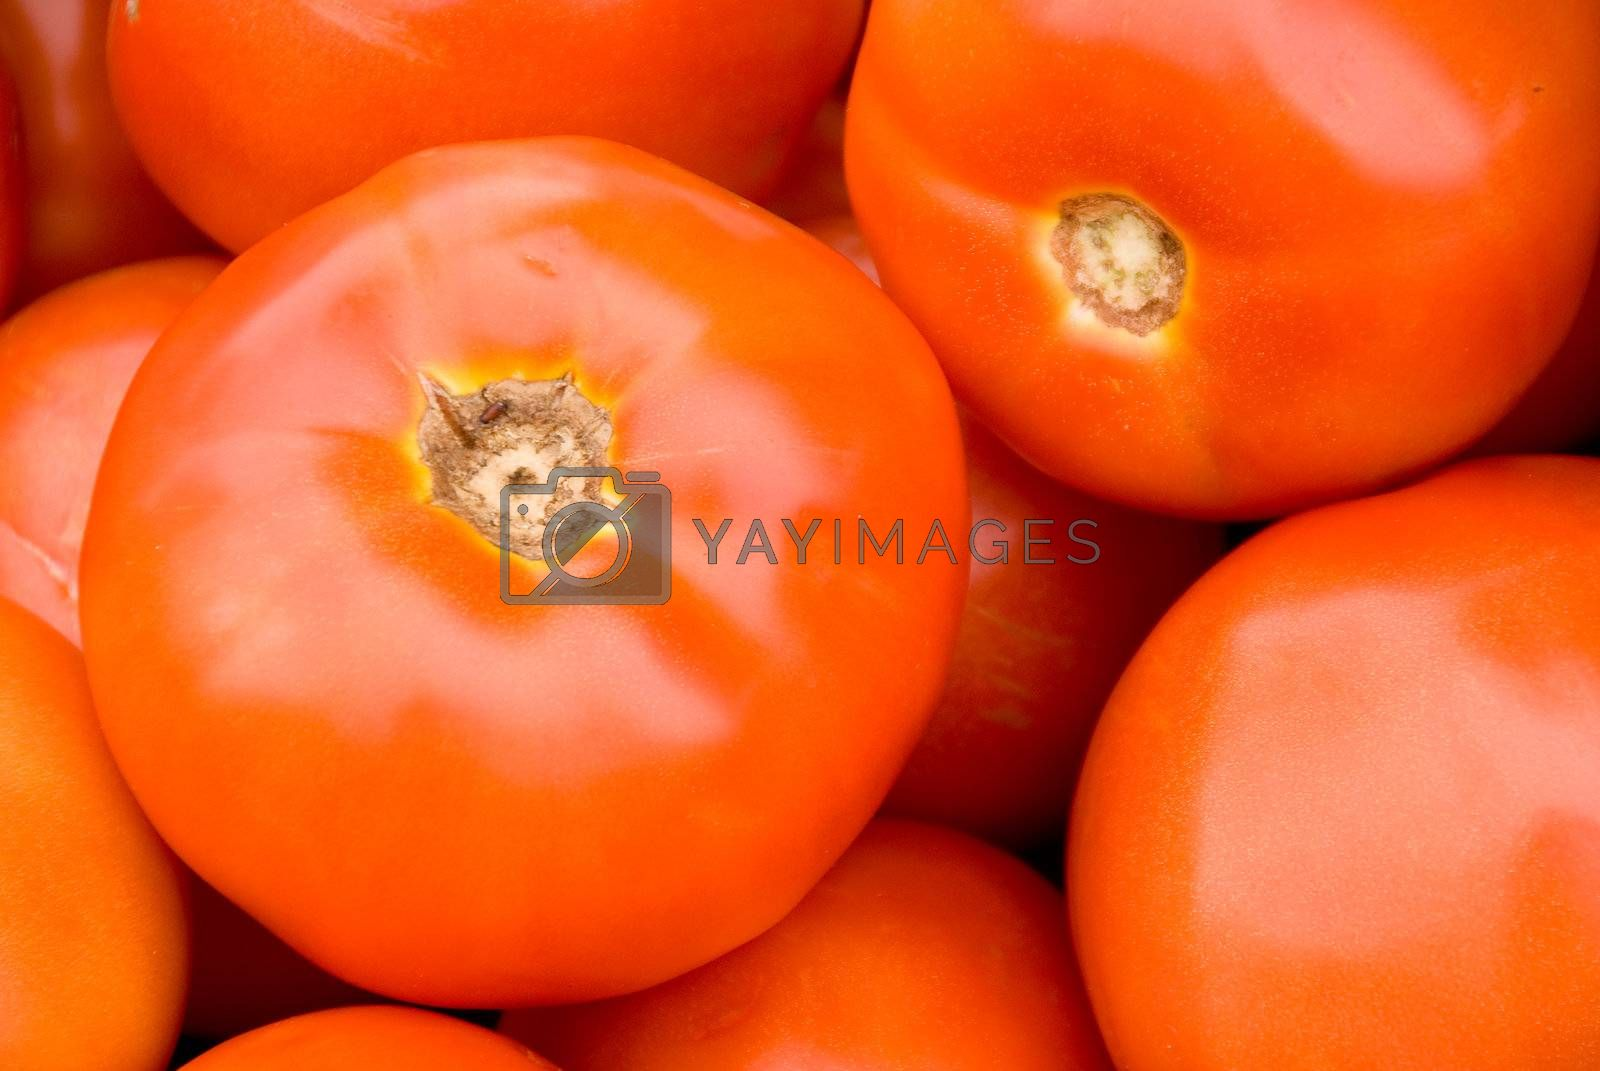 A beautiful and lucious tomato amongst a pile of its kind.